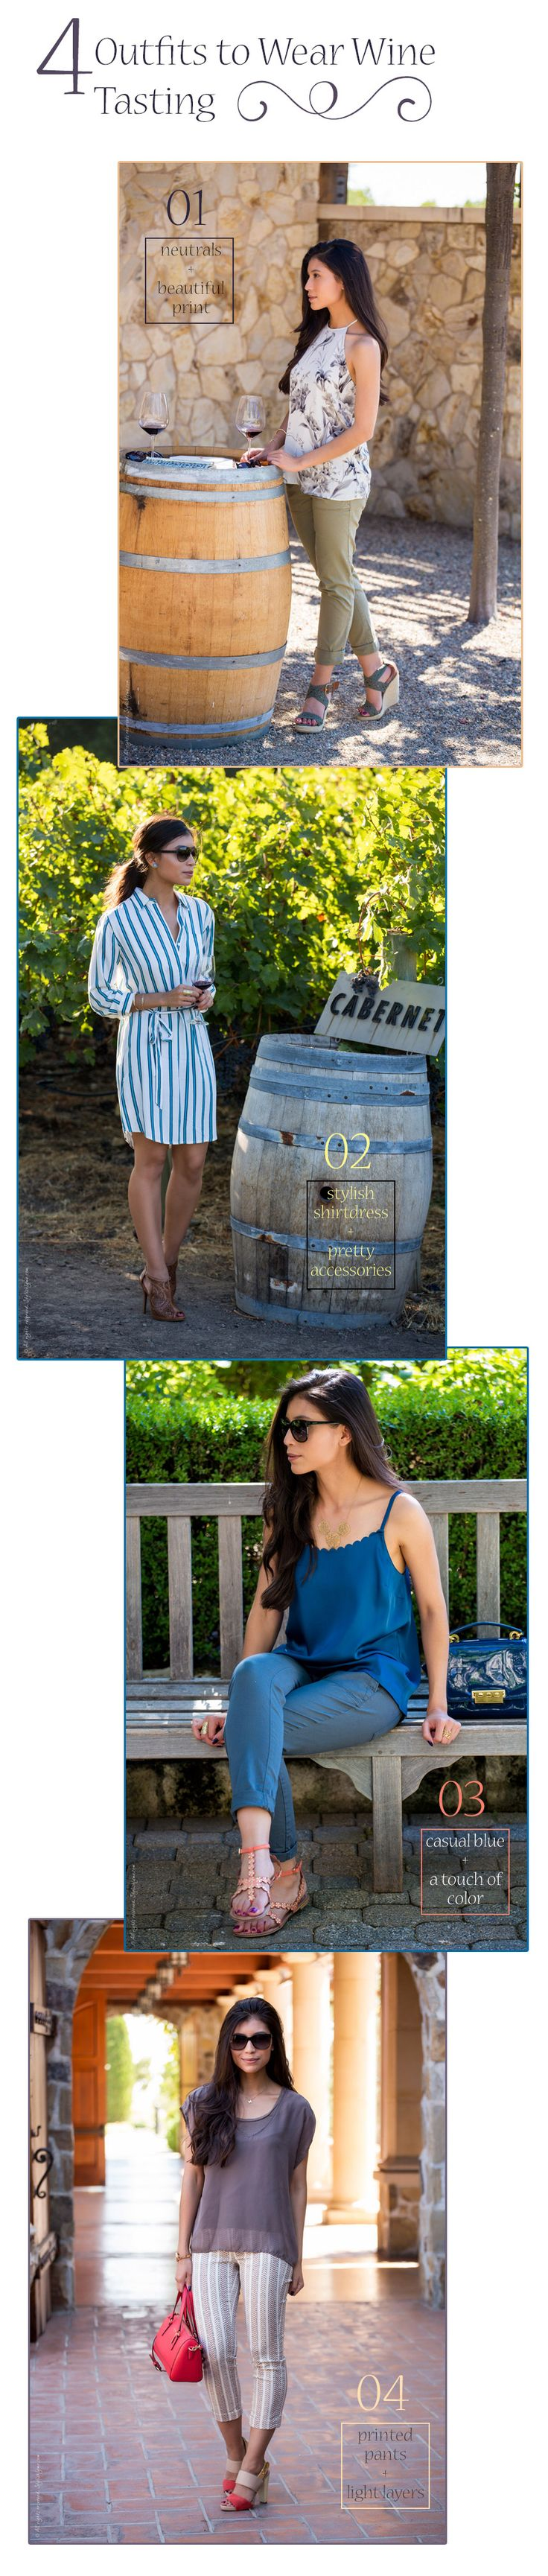 4 outfits to wear wine tasting - Visit Stylishlyme.com for more outfit inspiration and style tips